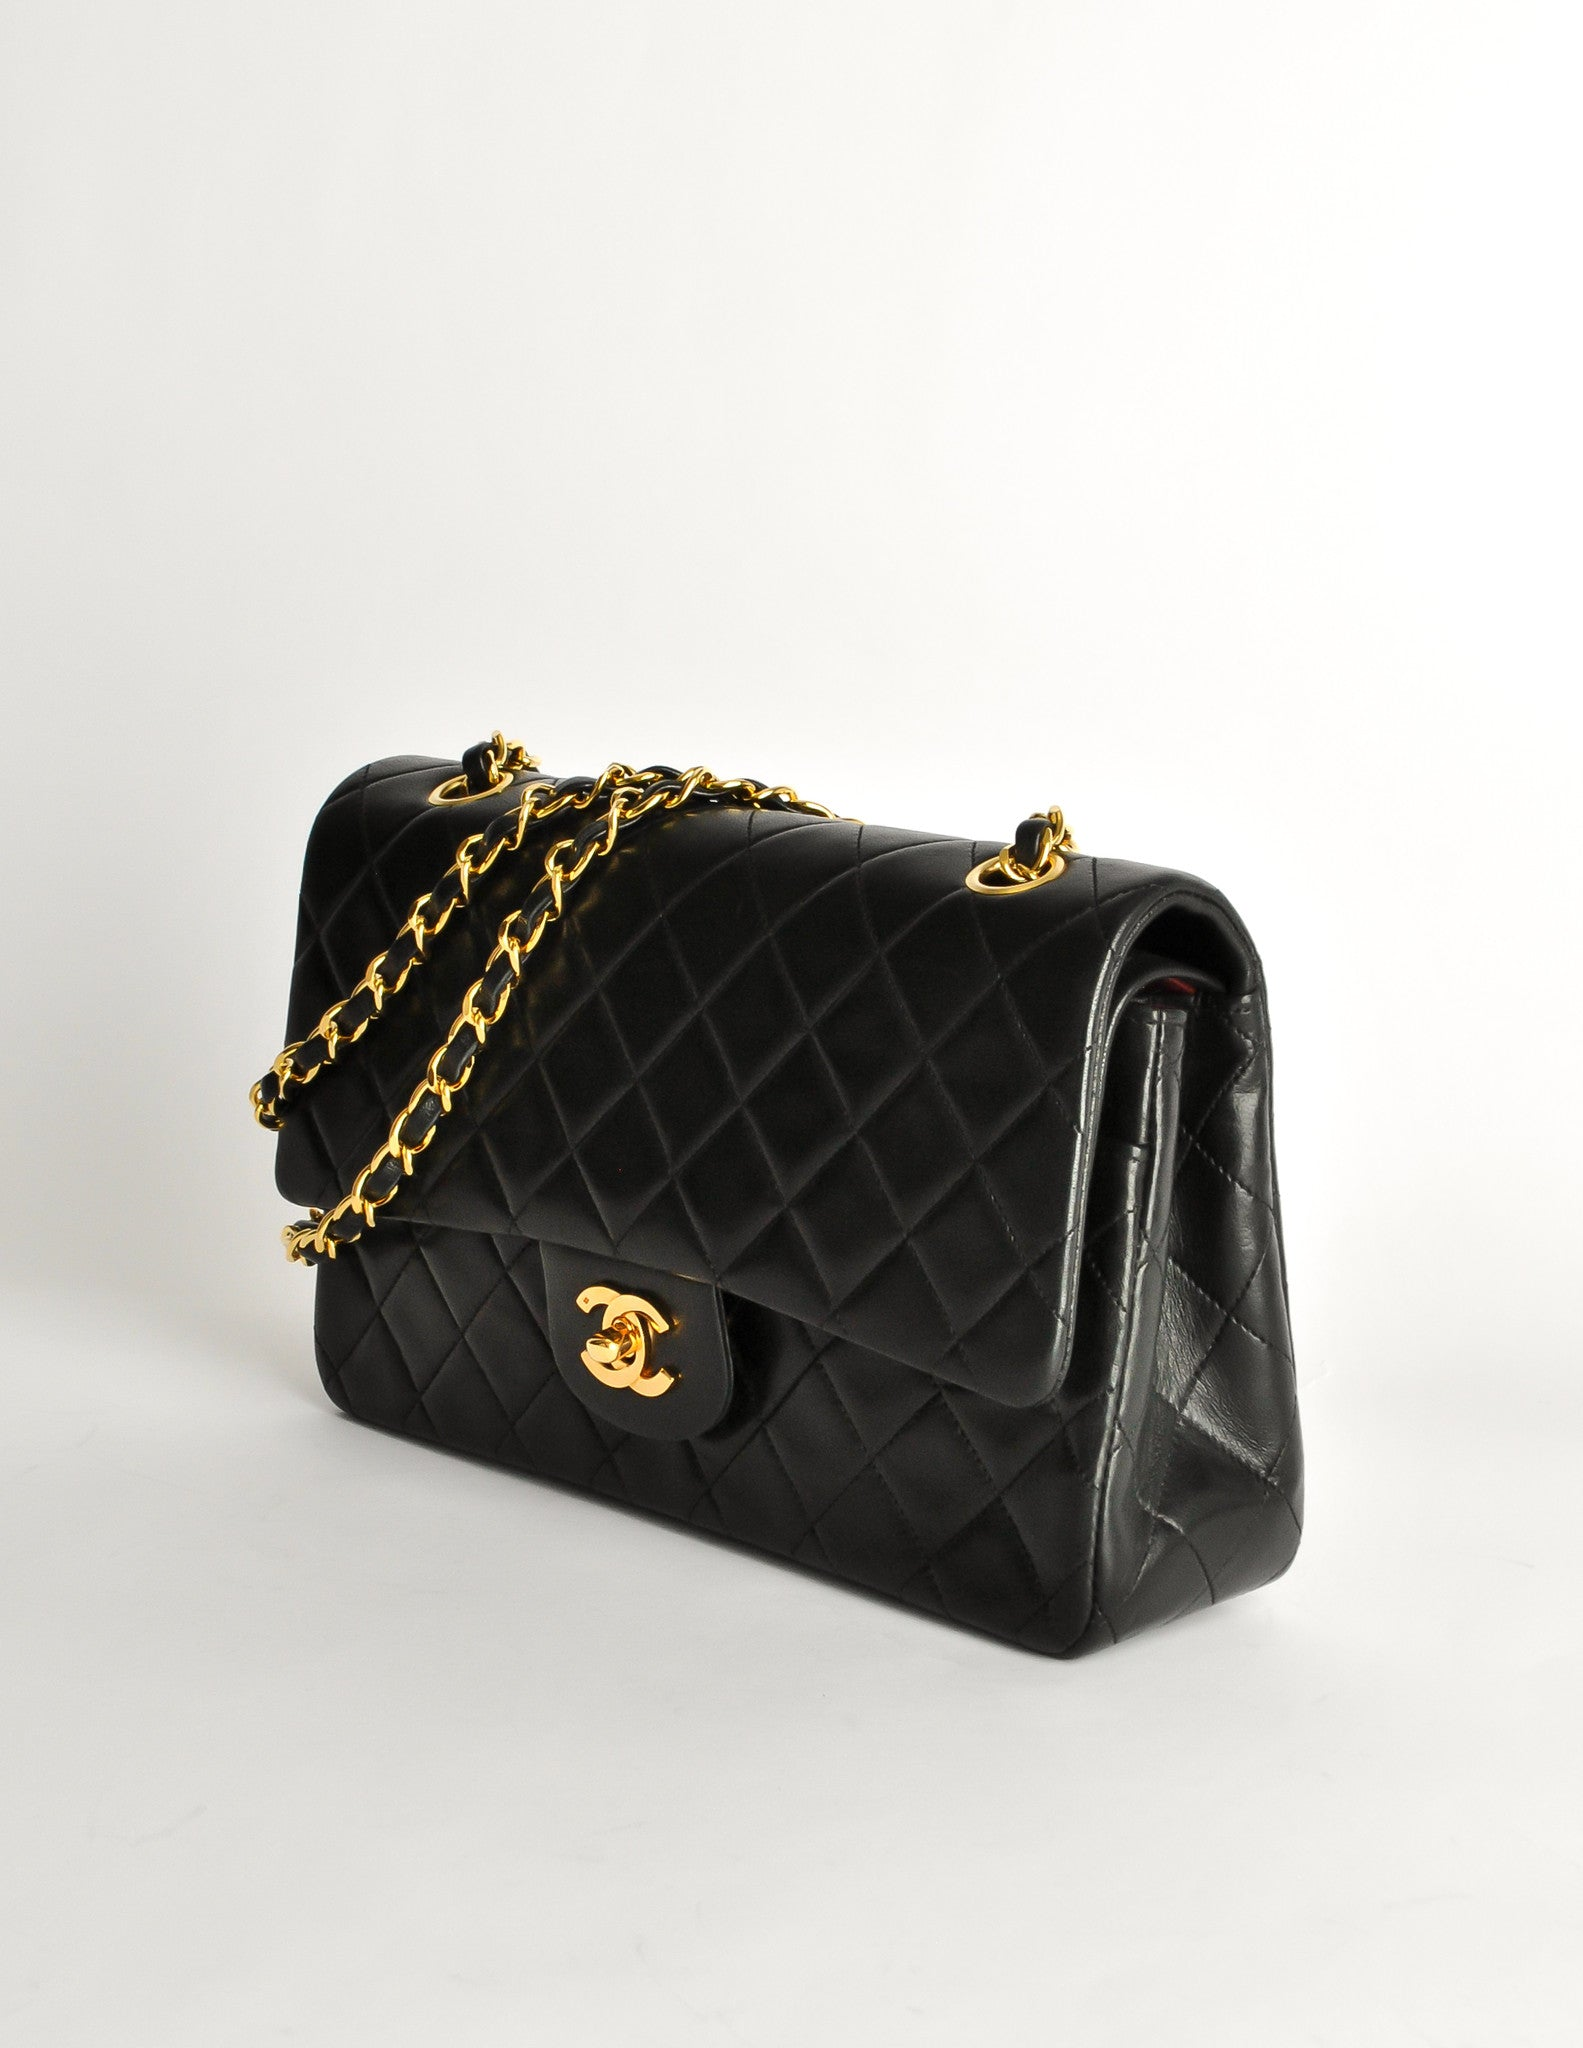 1657e6e3c18e Chanel Vintage Black Quilted Lambskin Leather Classic Double Flap Bag -  Amarcord Vintage Fashion - 3